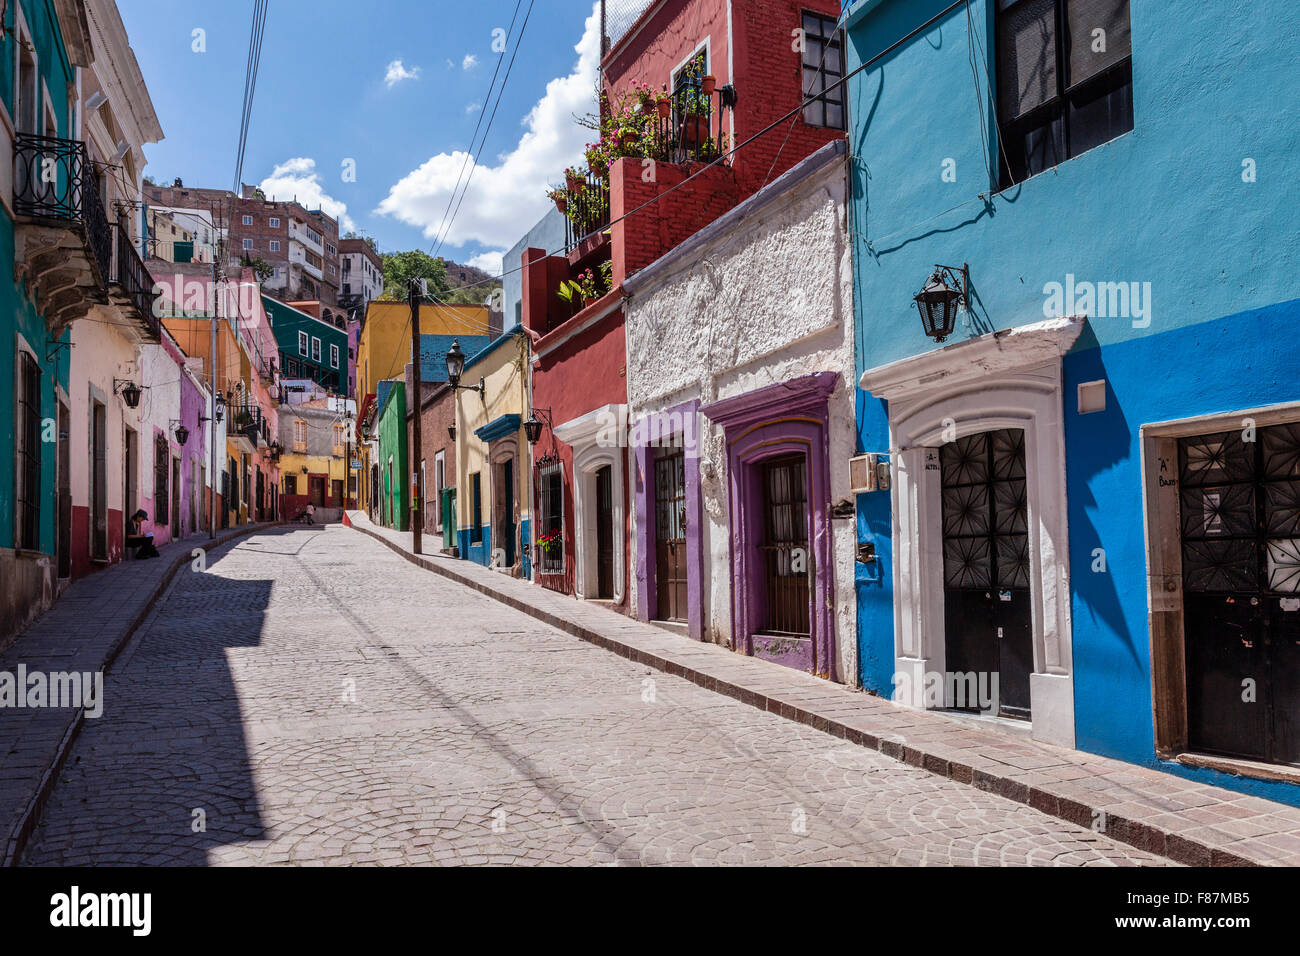 Colorful street in the historic downtown of Guanajuato, Mexico. - Stock Image